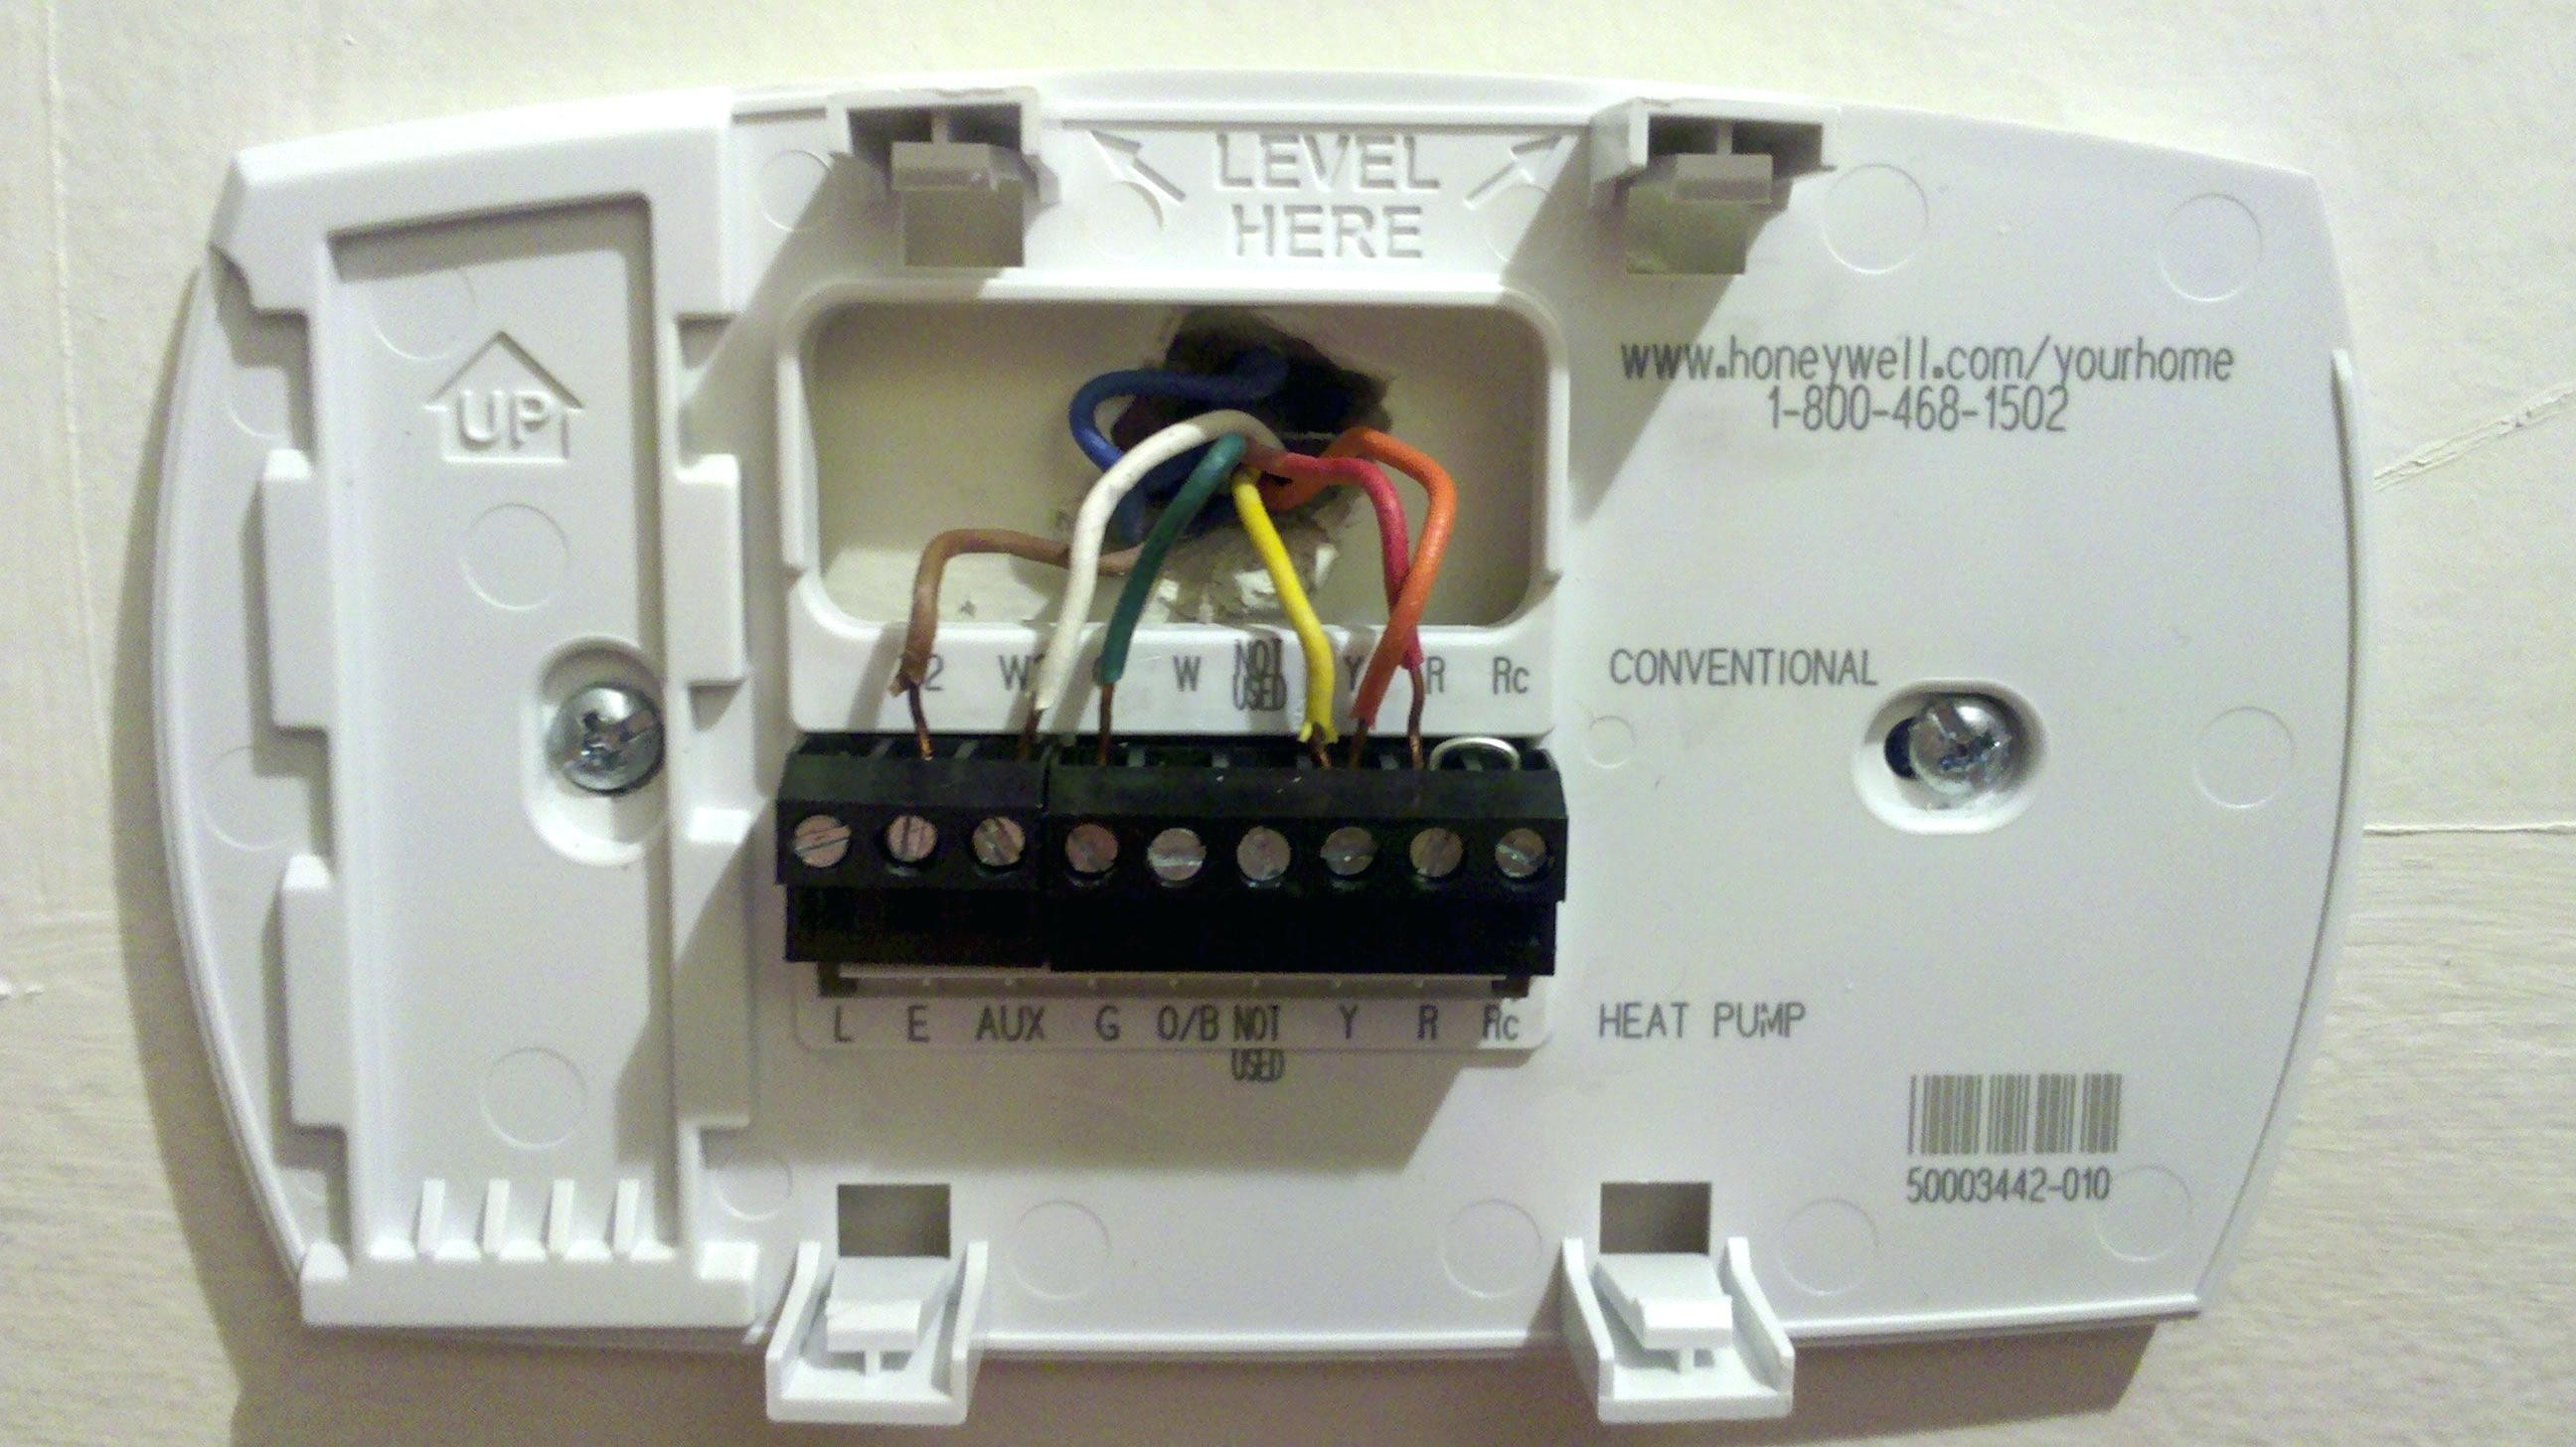 Honeywell Heat Pump thermostat Wiring Diagram Wiring Honeywell thermostat Rth6350 Wiring Diagrams • Of Honeywell Heat Pump thermostat Wiring Diagram